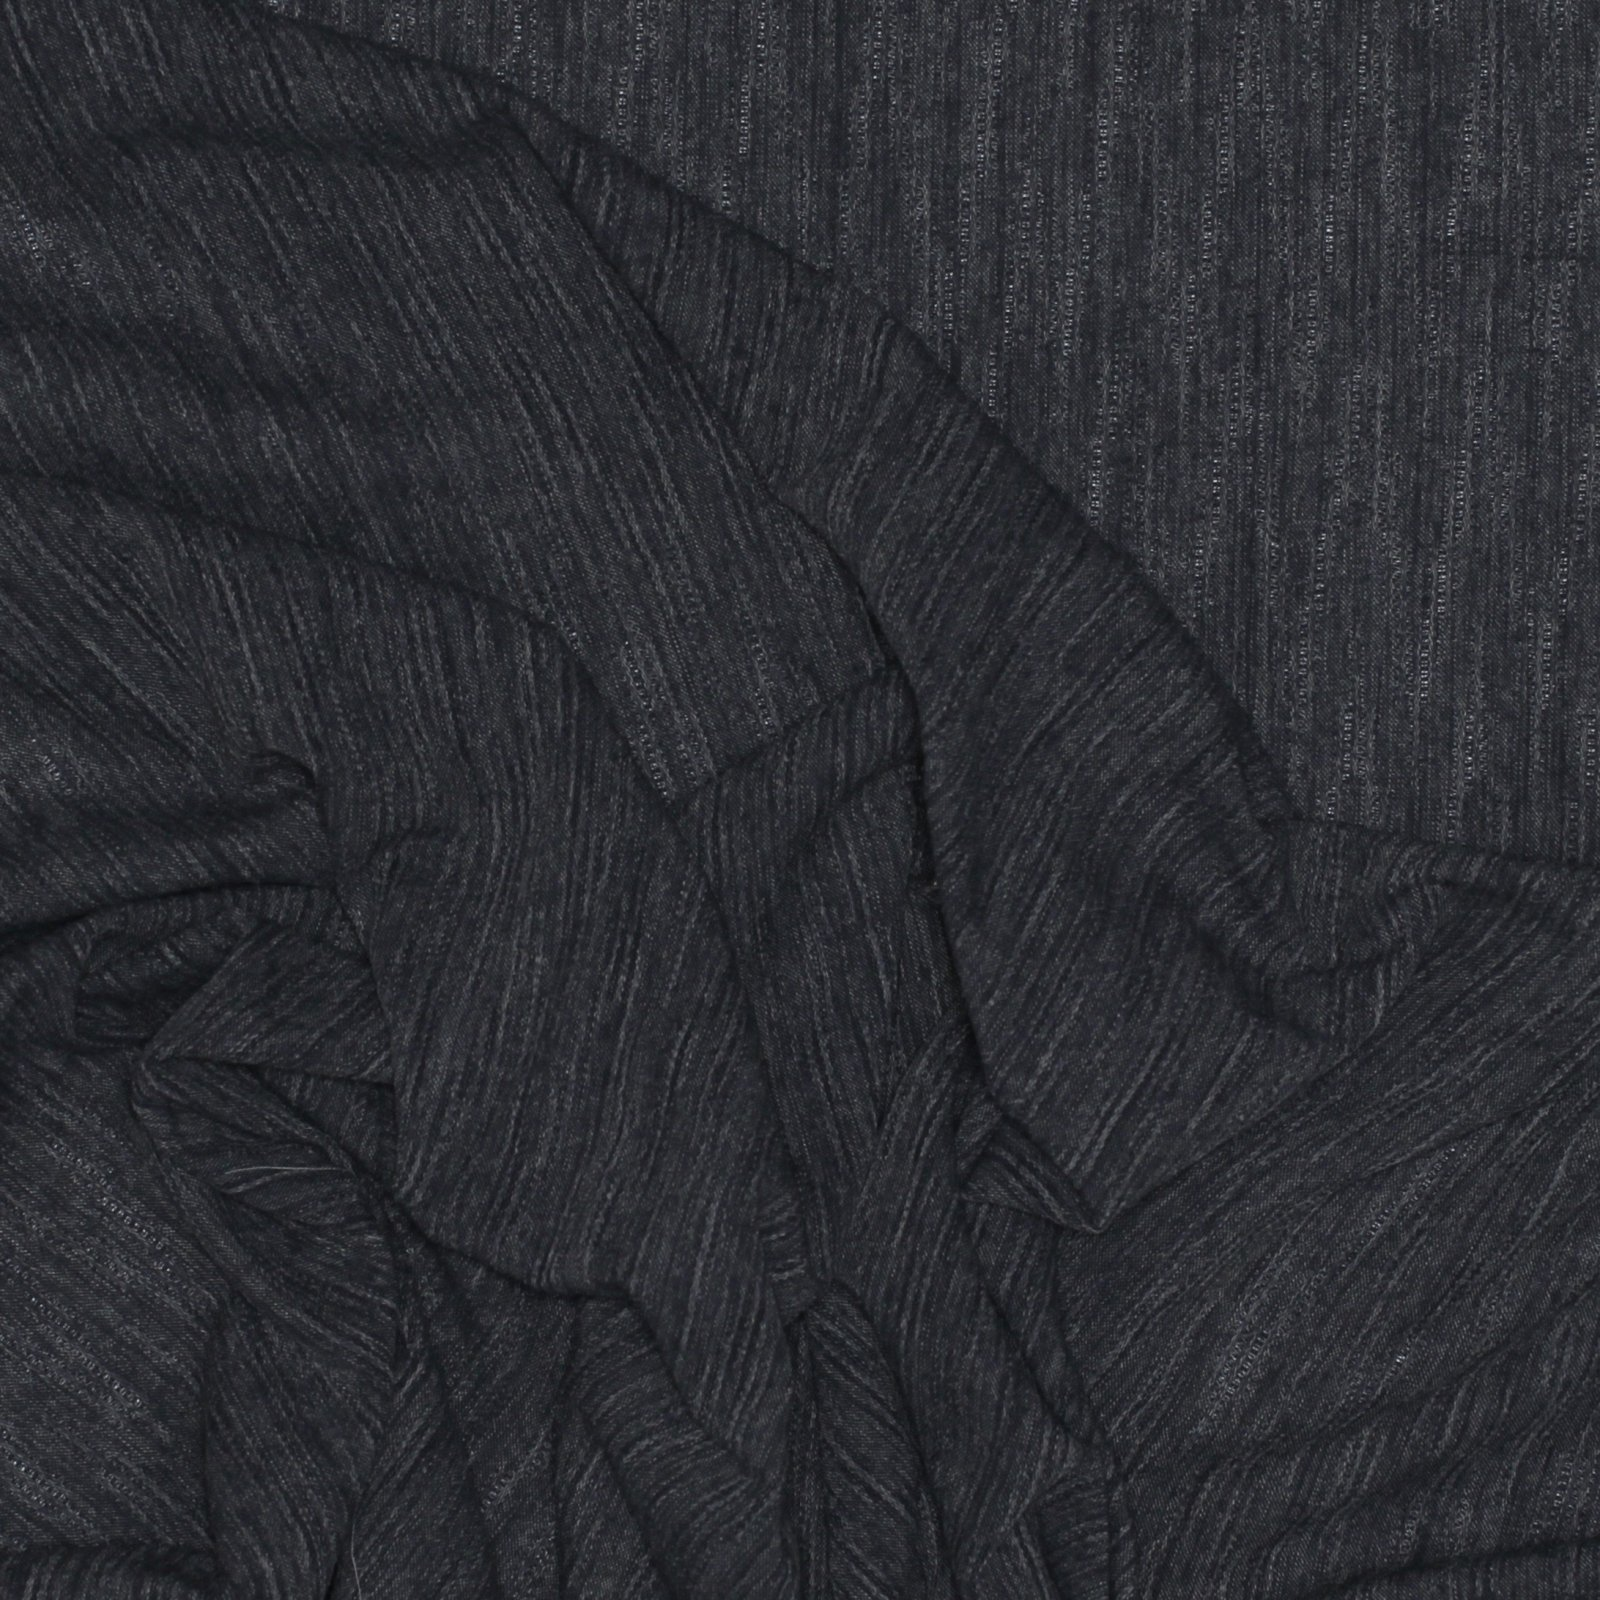 Yarn Dyed Textured Stripe - Charcoal Japanese Cotton